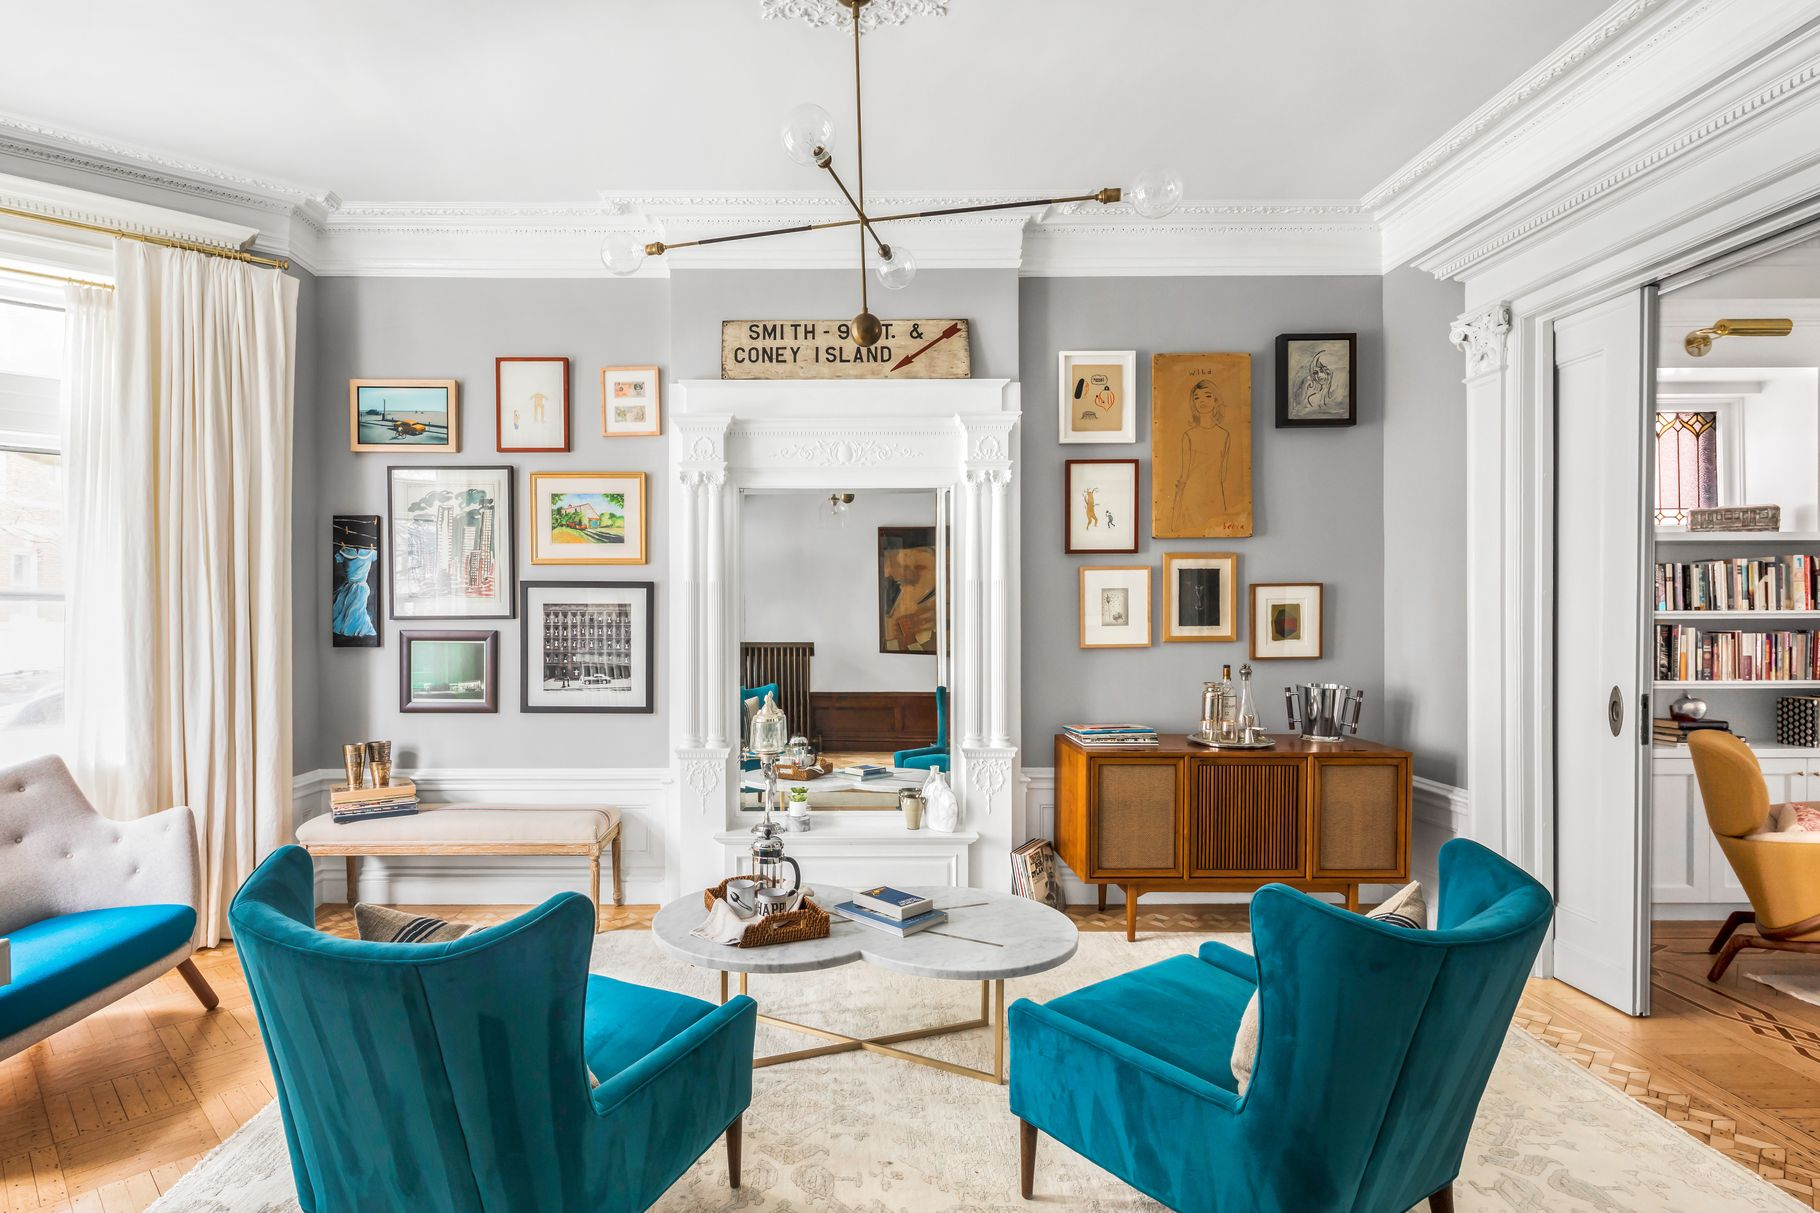 Featured Listing: Step Inside the Park Slope Townhouse of Emily Blunt & John Krasinski Which Listed for $8 Million